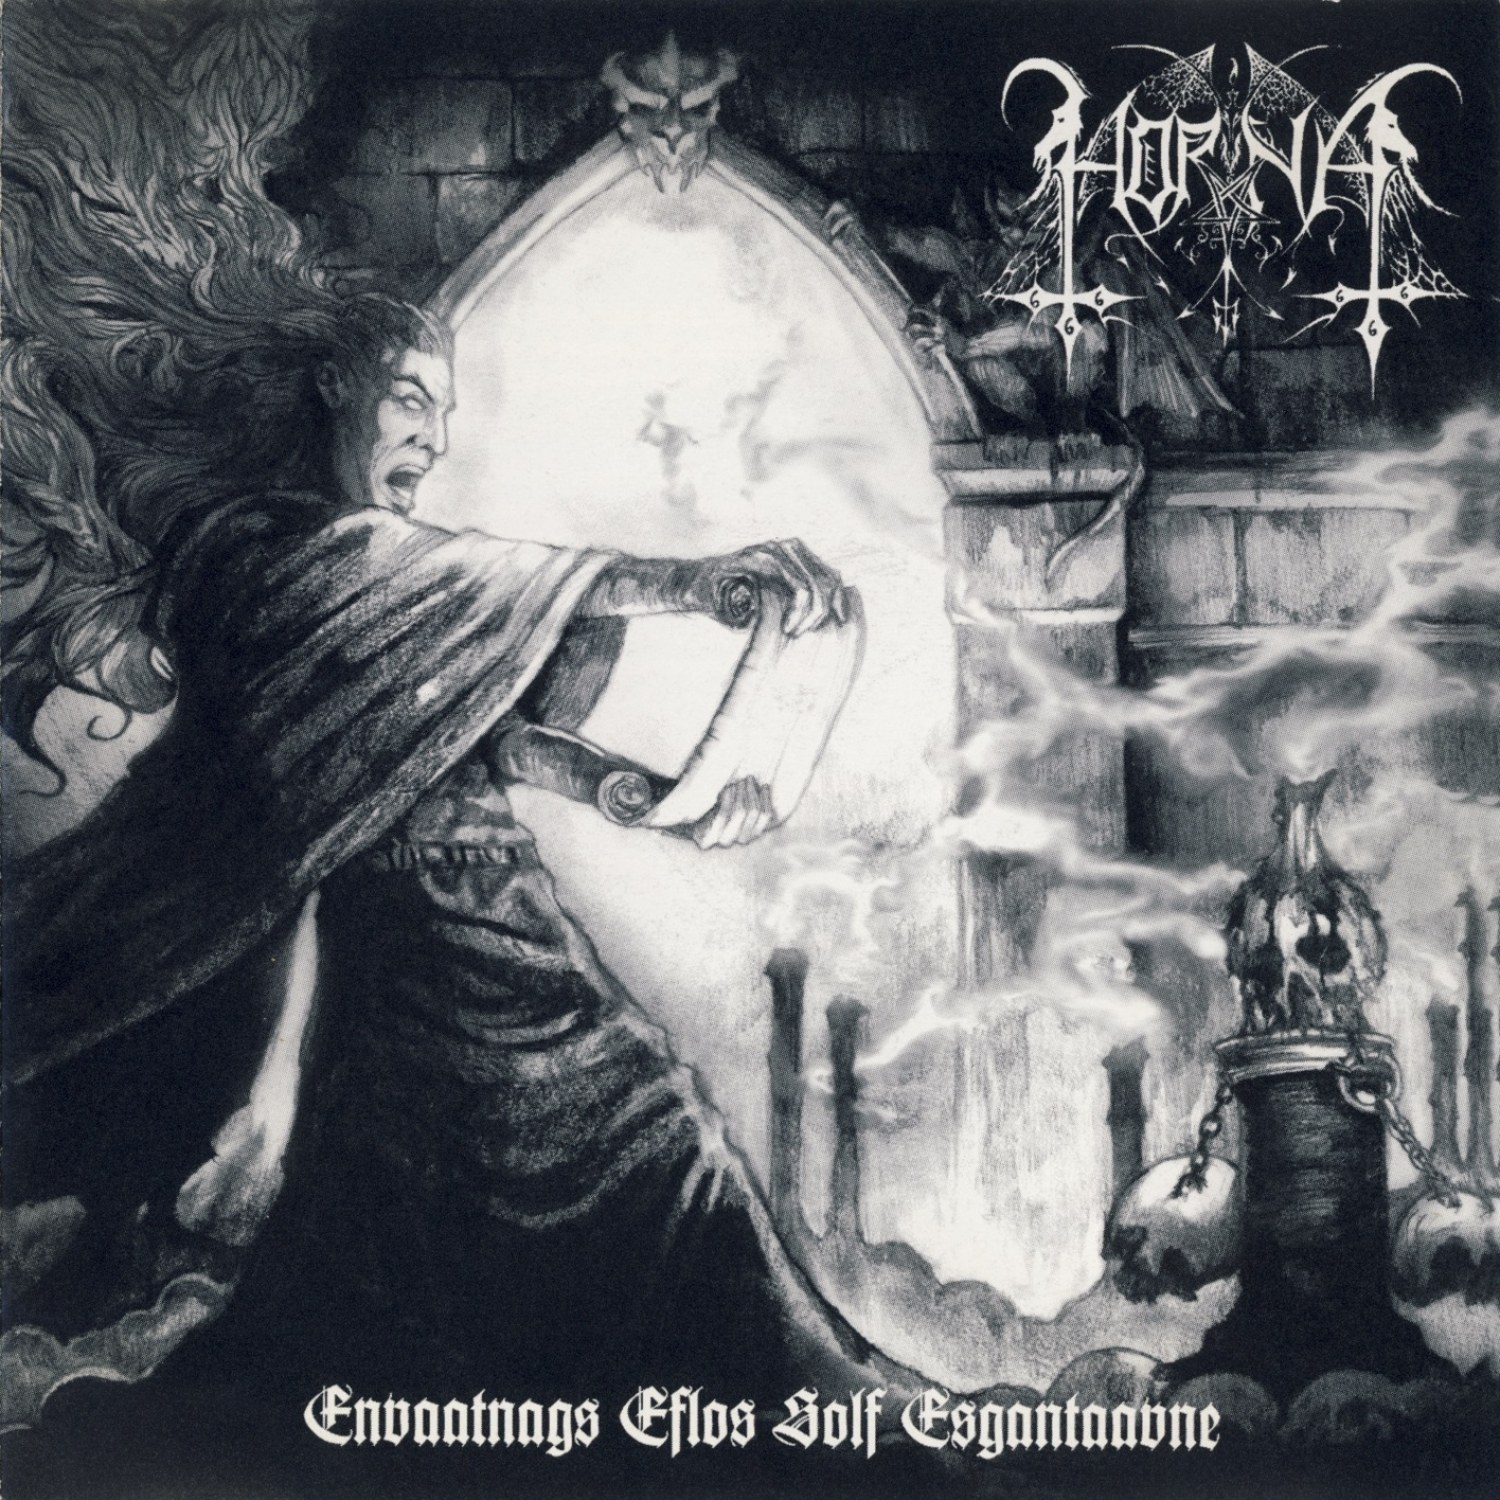 Reviews for Horna - Envaatnags Eflos Solf Esgantaavne